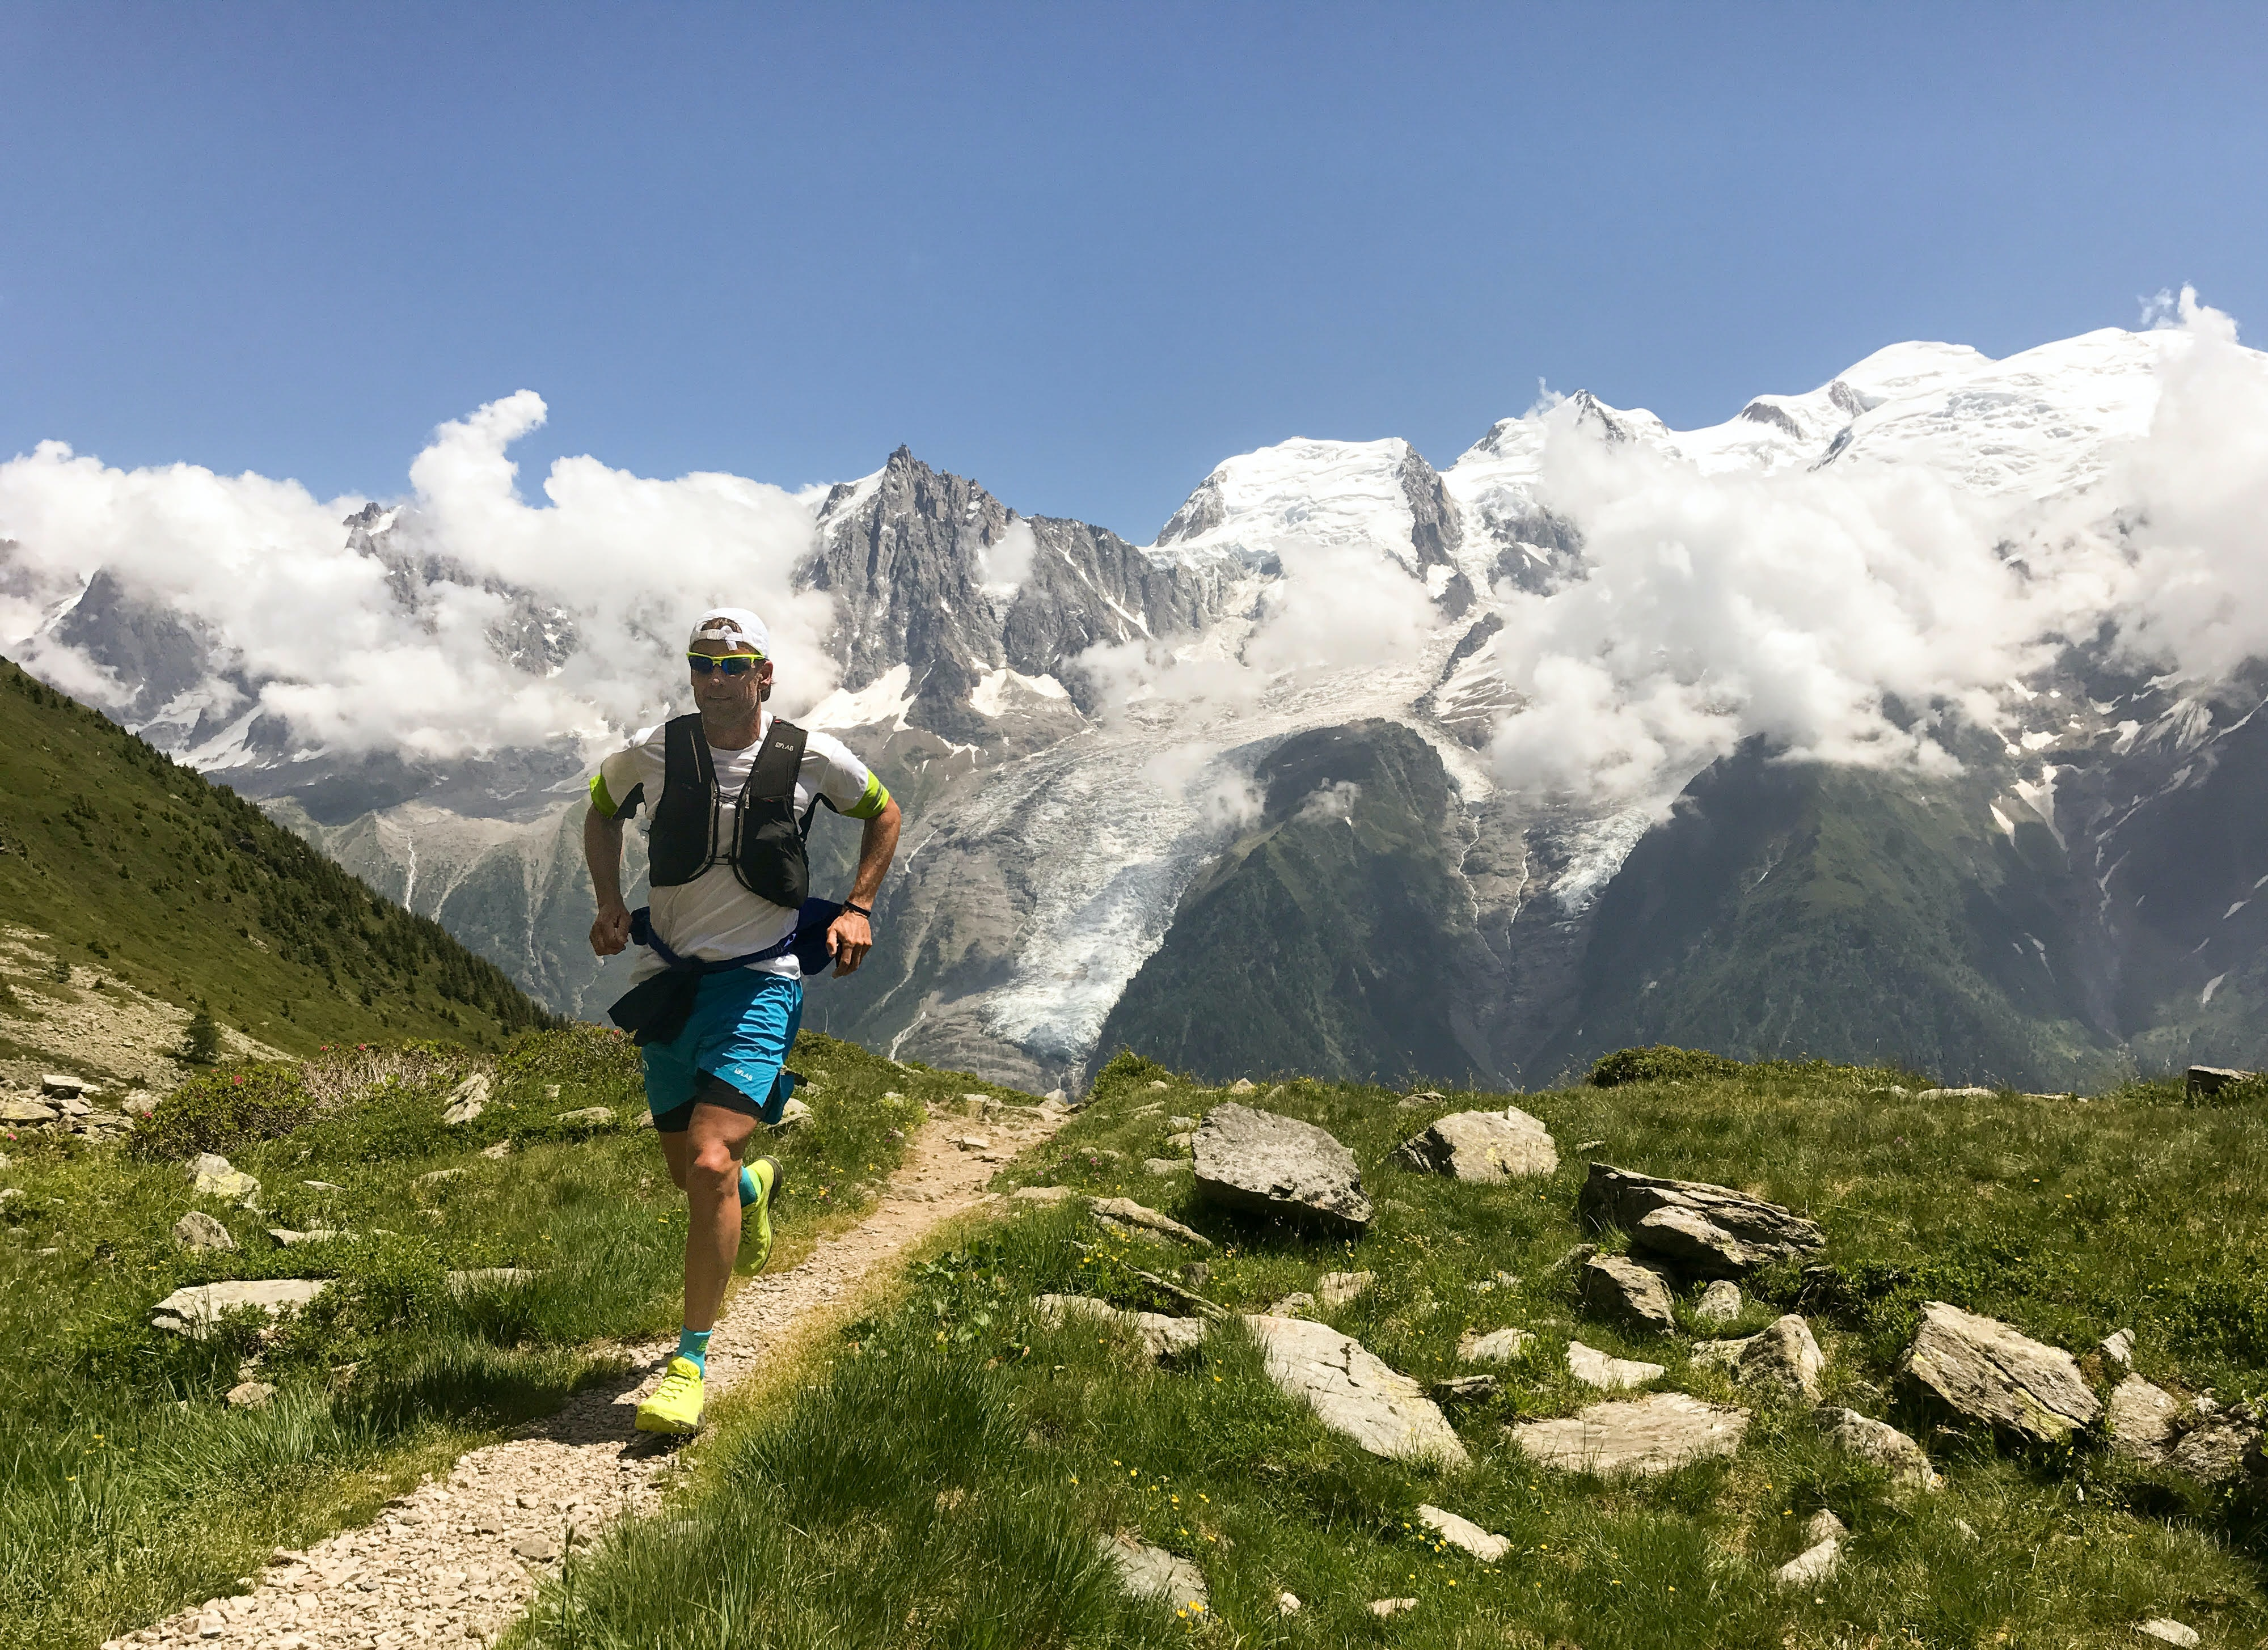 A man jogging on a narrow footpath in high mountains